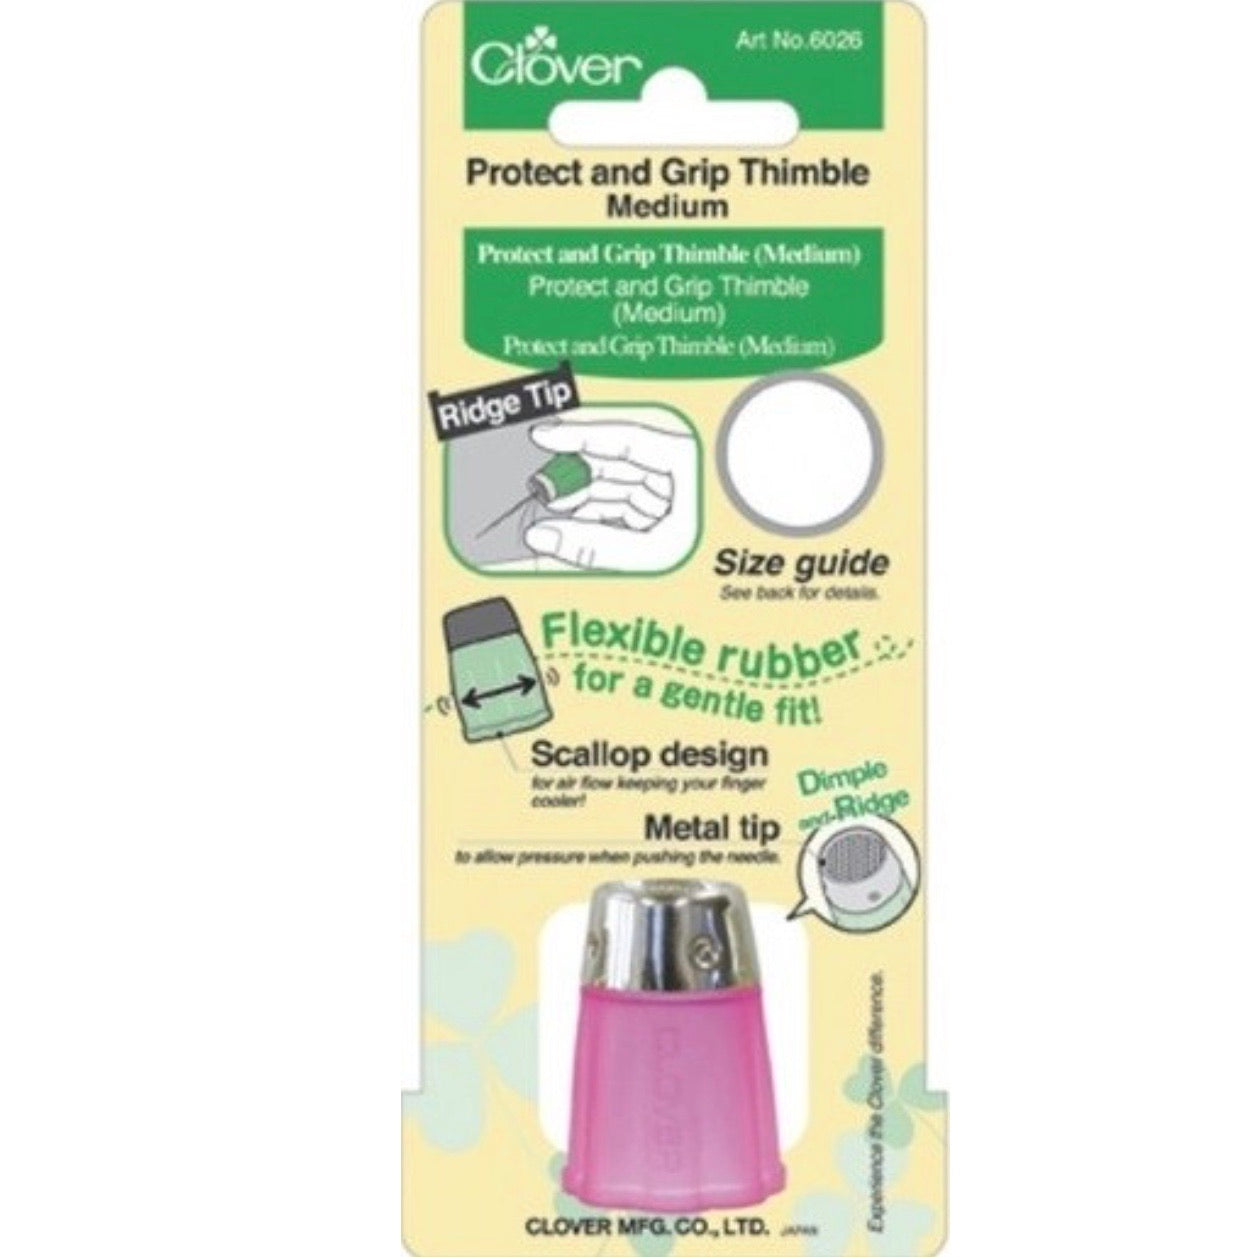 Grip and Protect Thimble - Medium